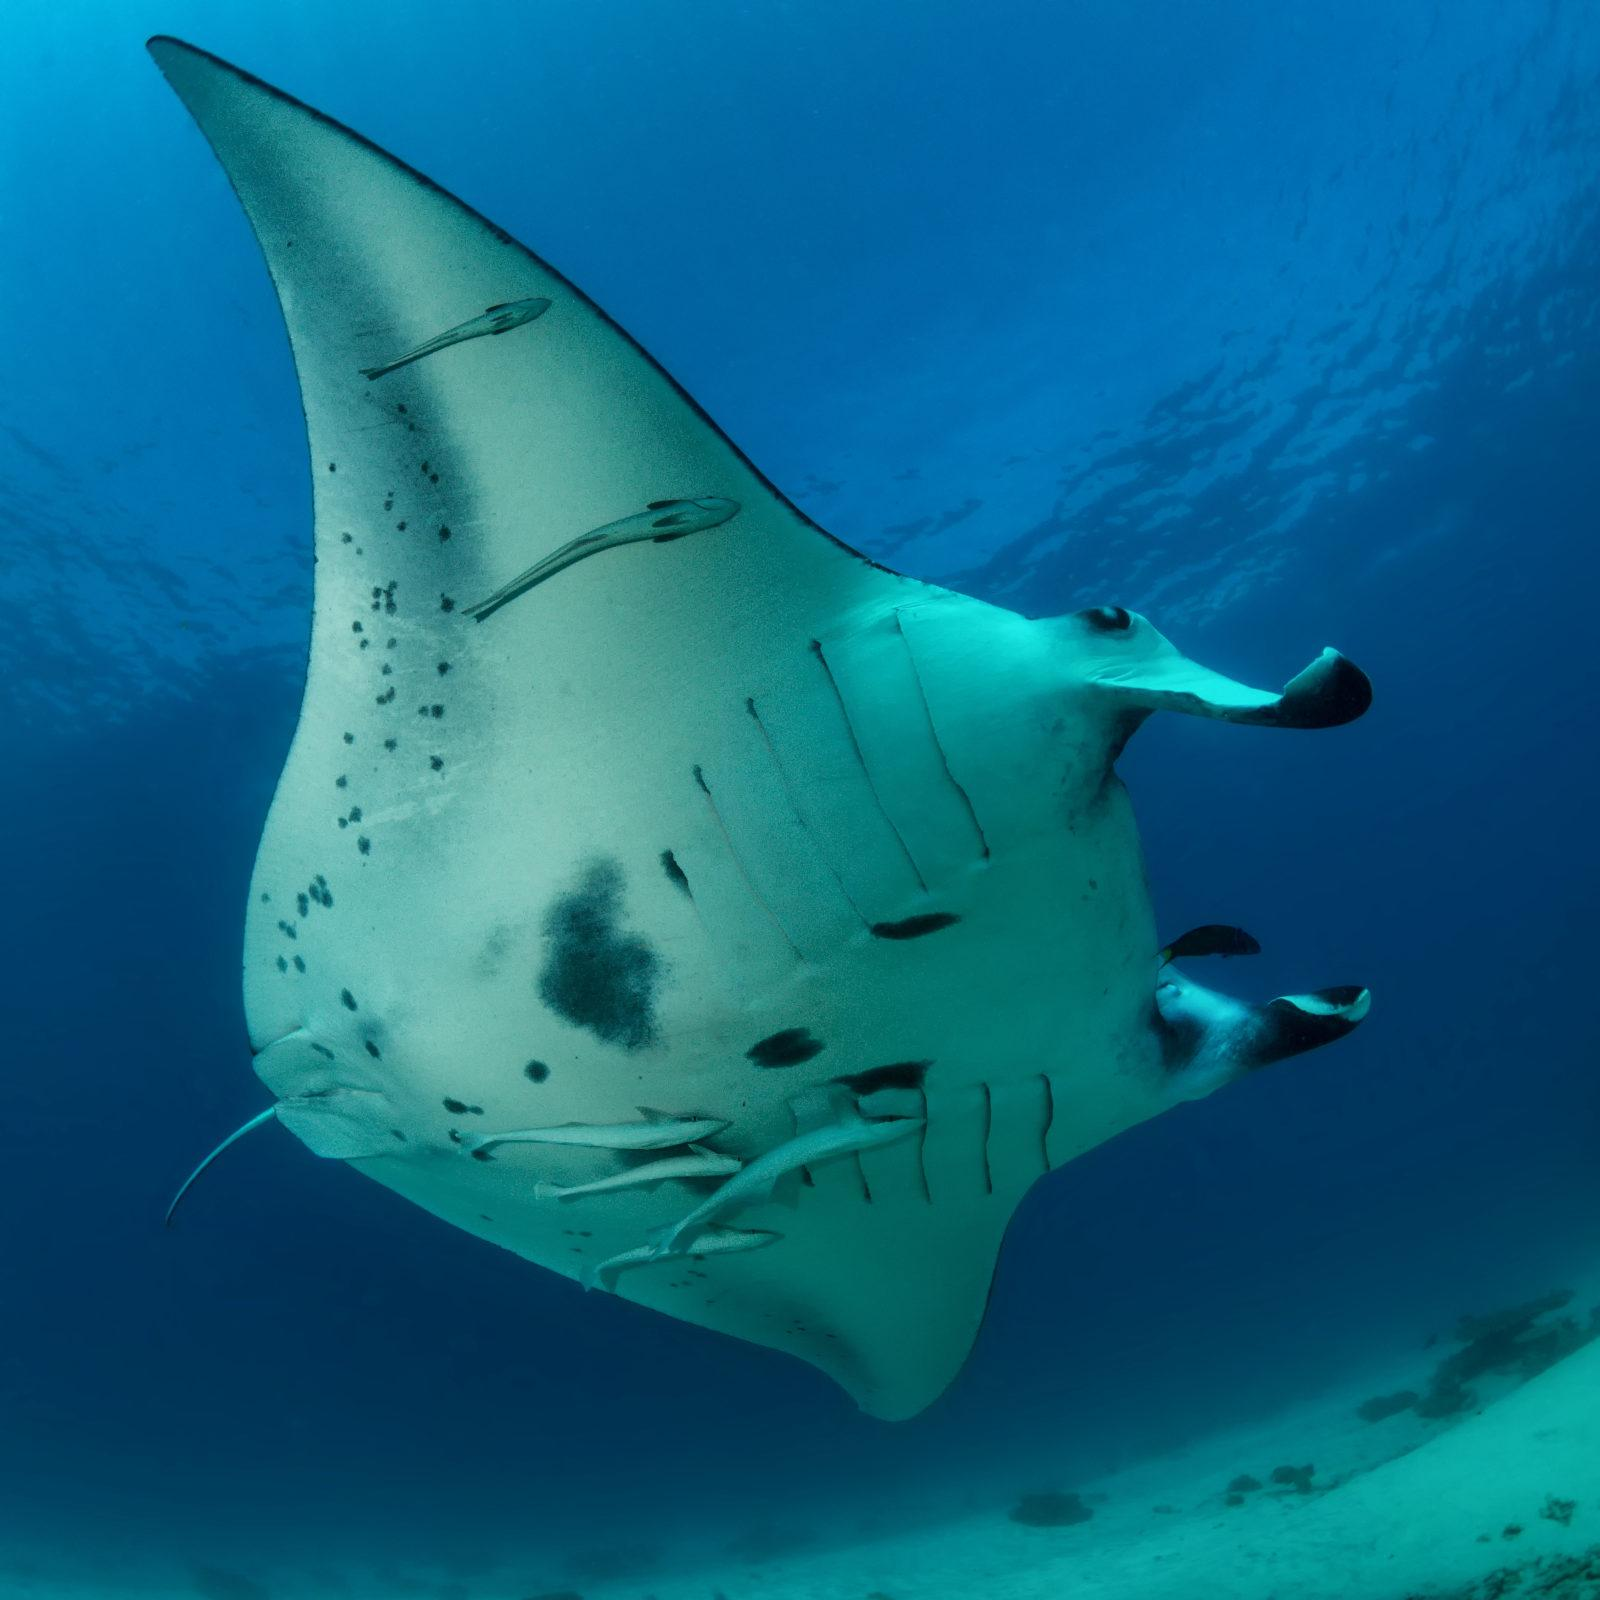 300 Species of Sharks and Rays Threatened with Extinction